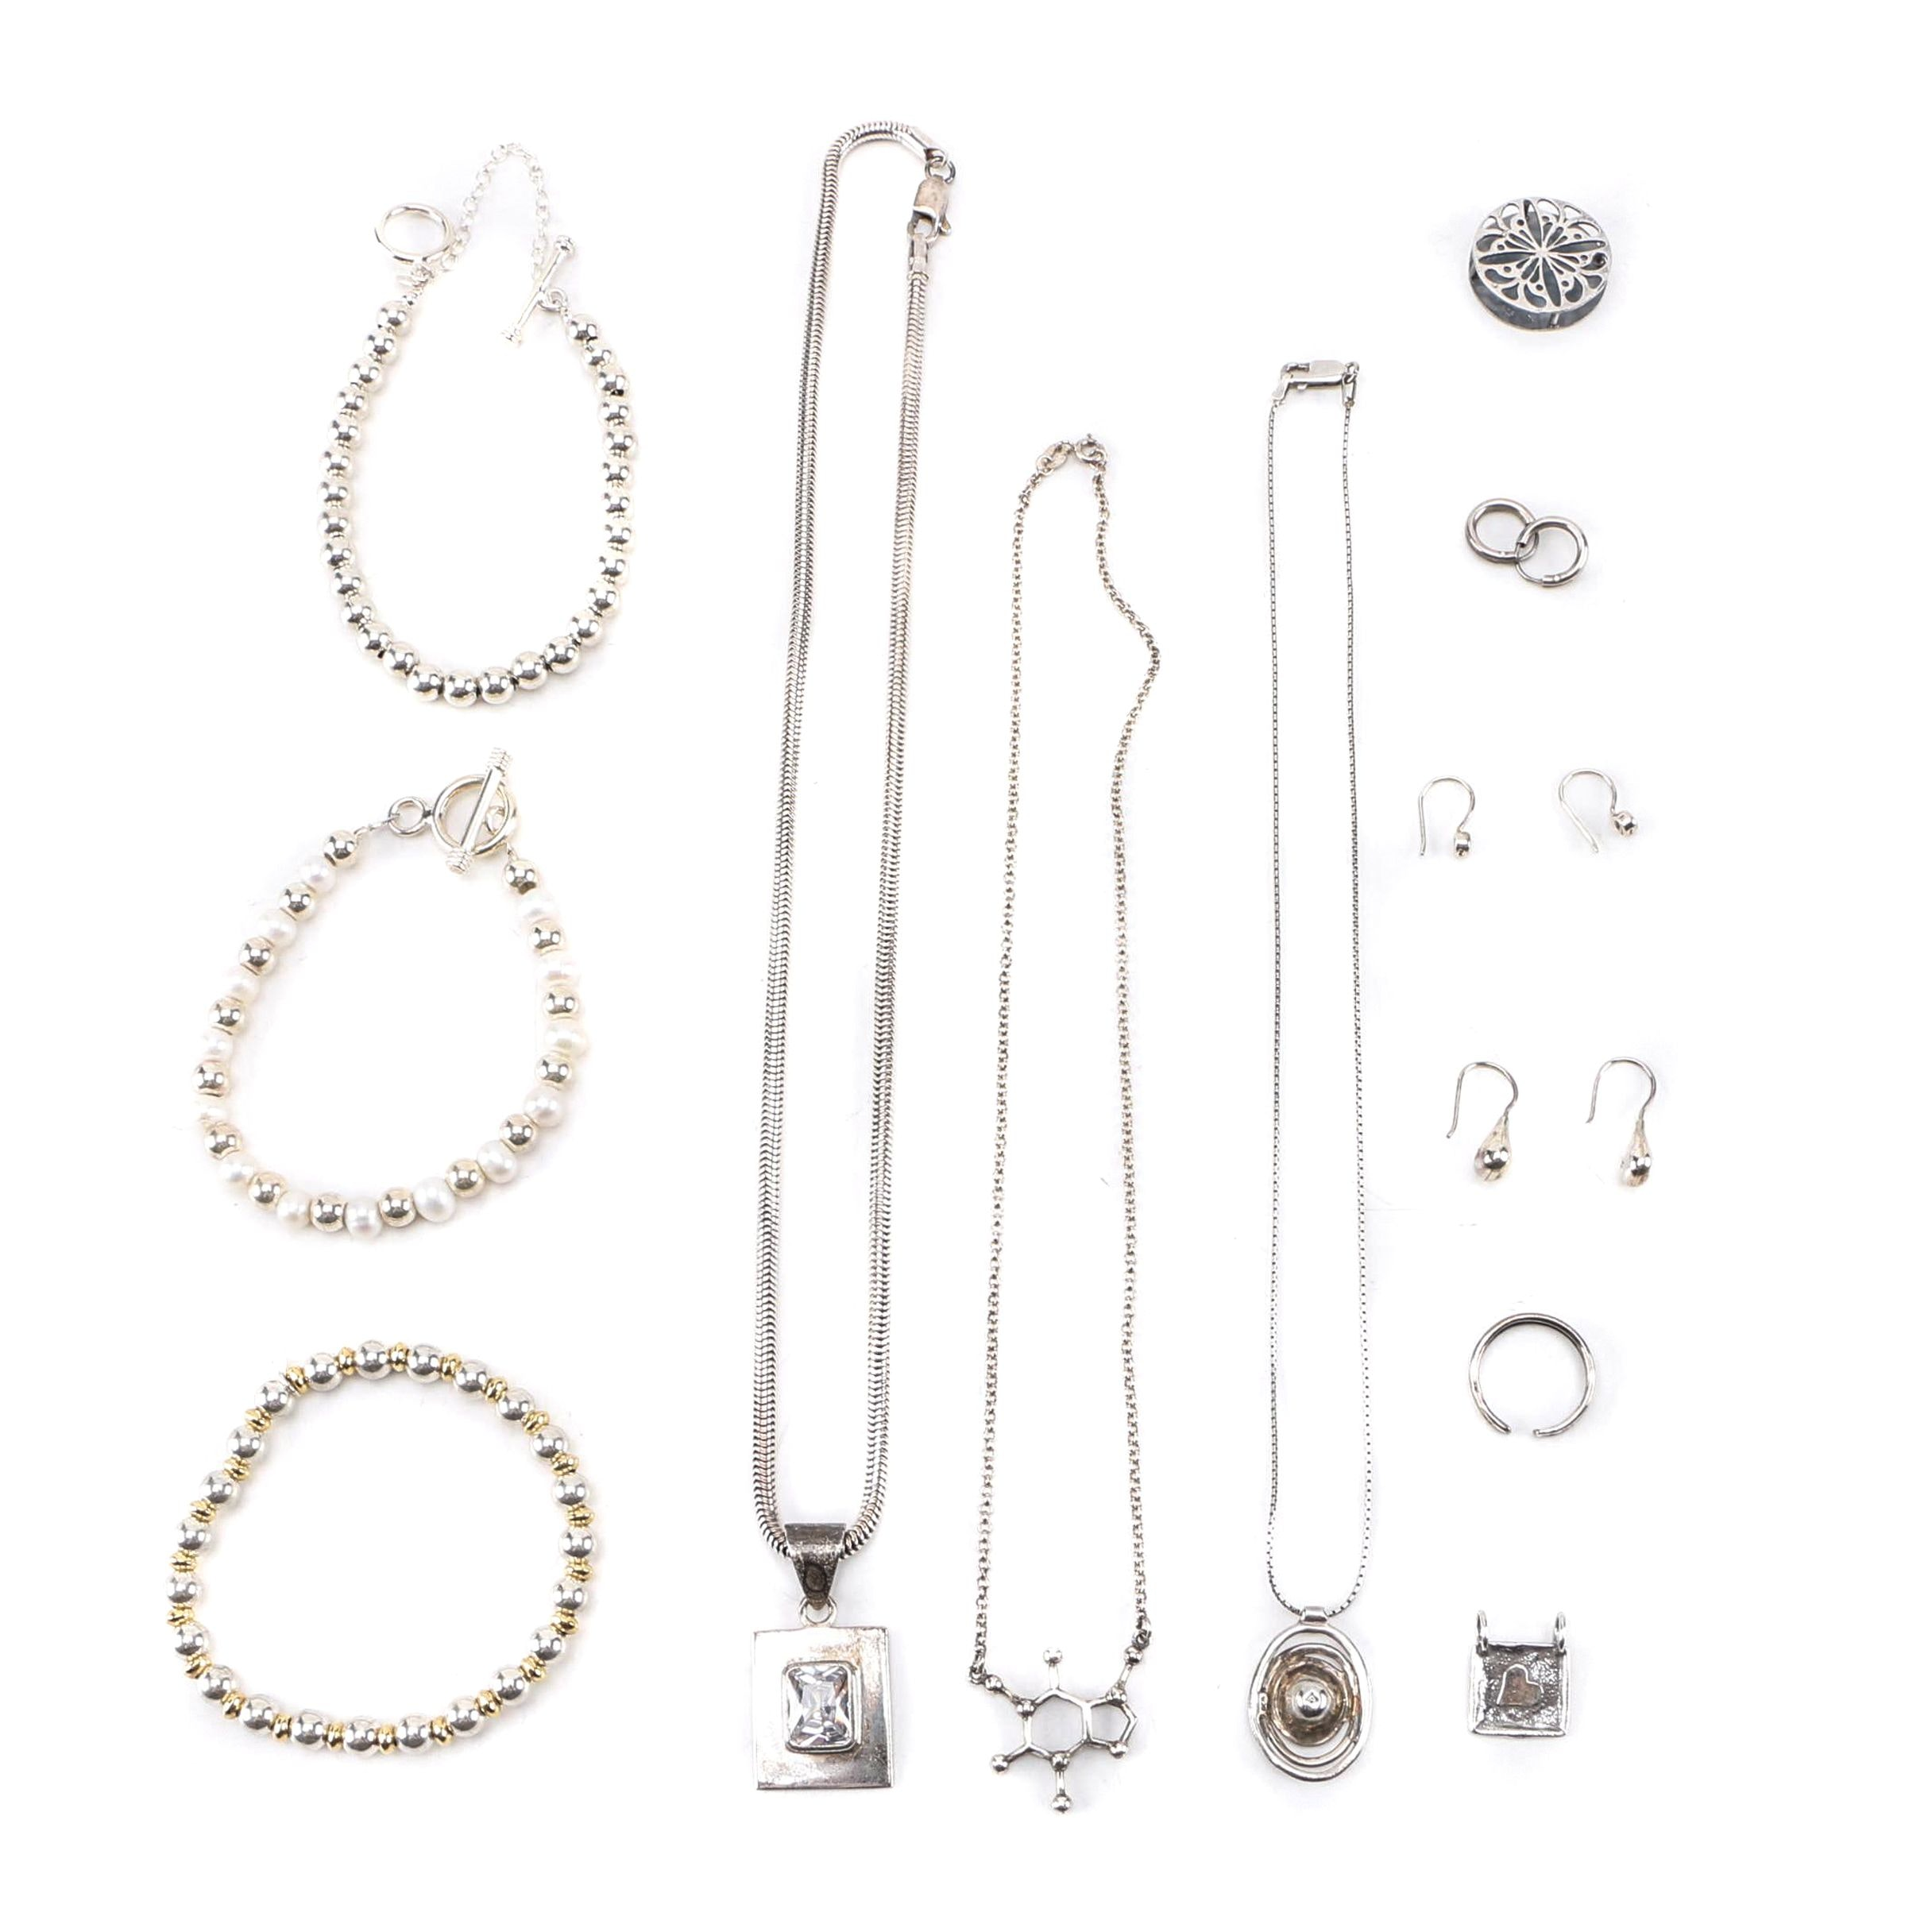 Assortment of Silpada Sterling Silver Jewelry Including Cultured Pearls